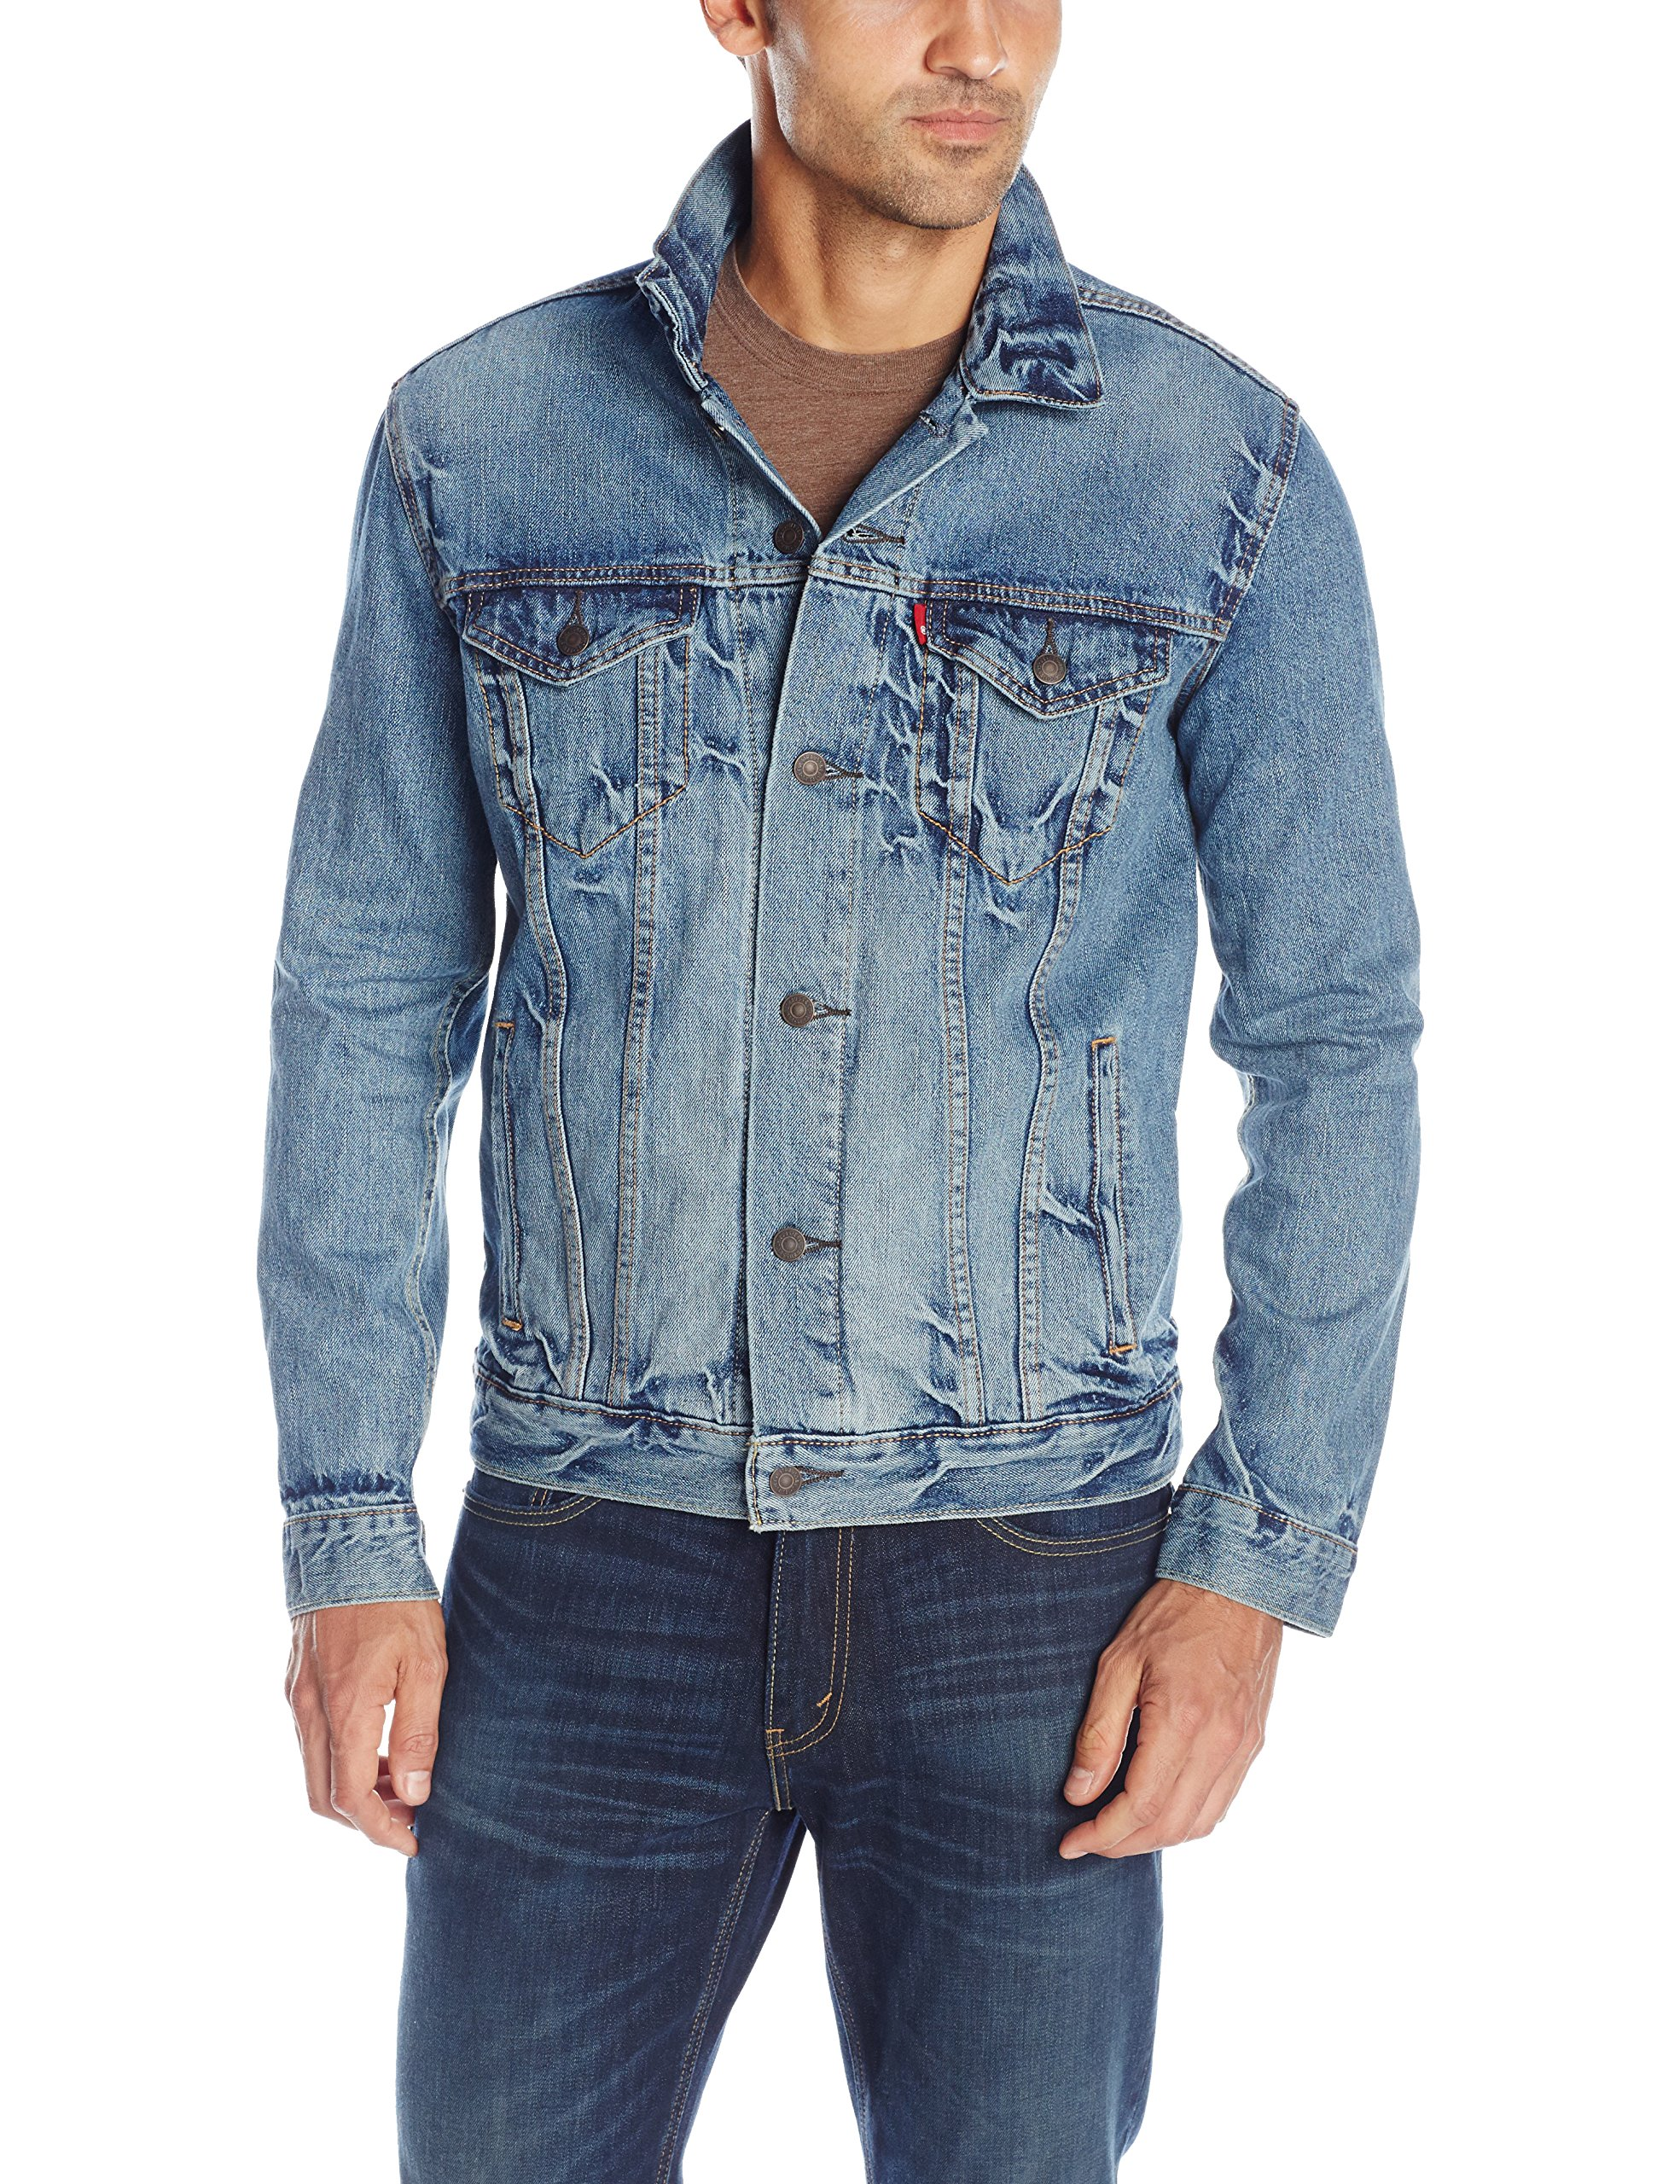 Levi's Men's The Trucker Jacket, Spire, Large by Levi's